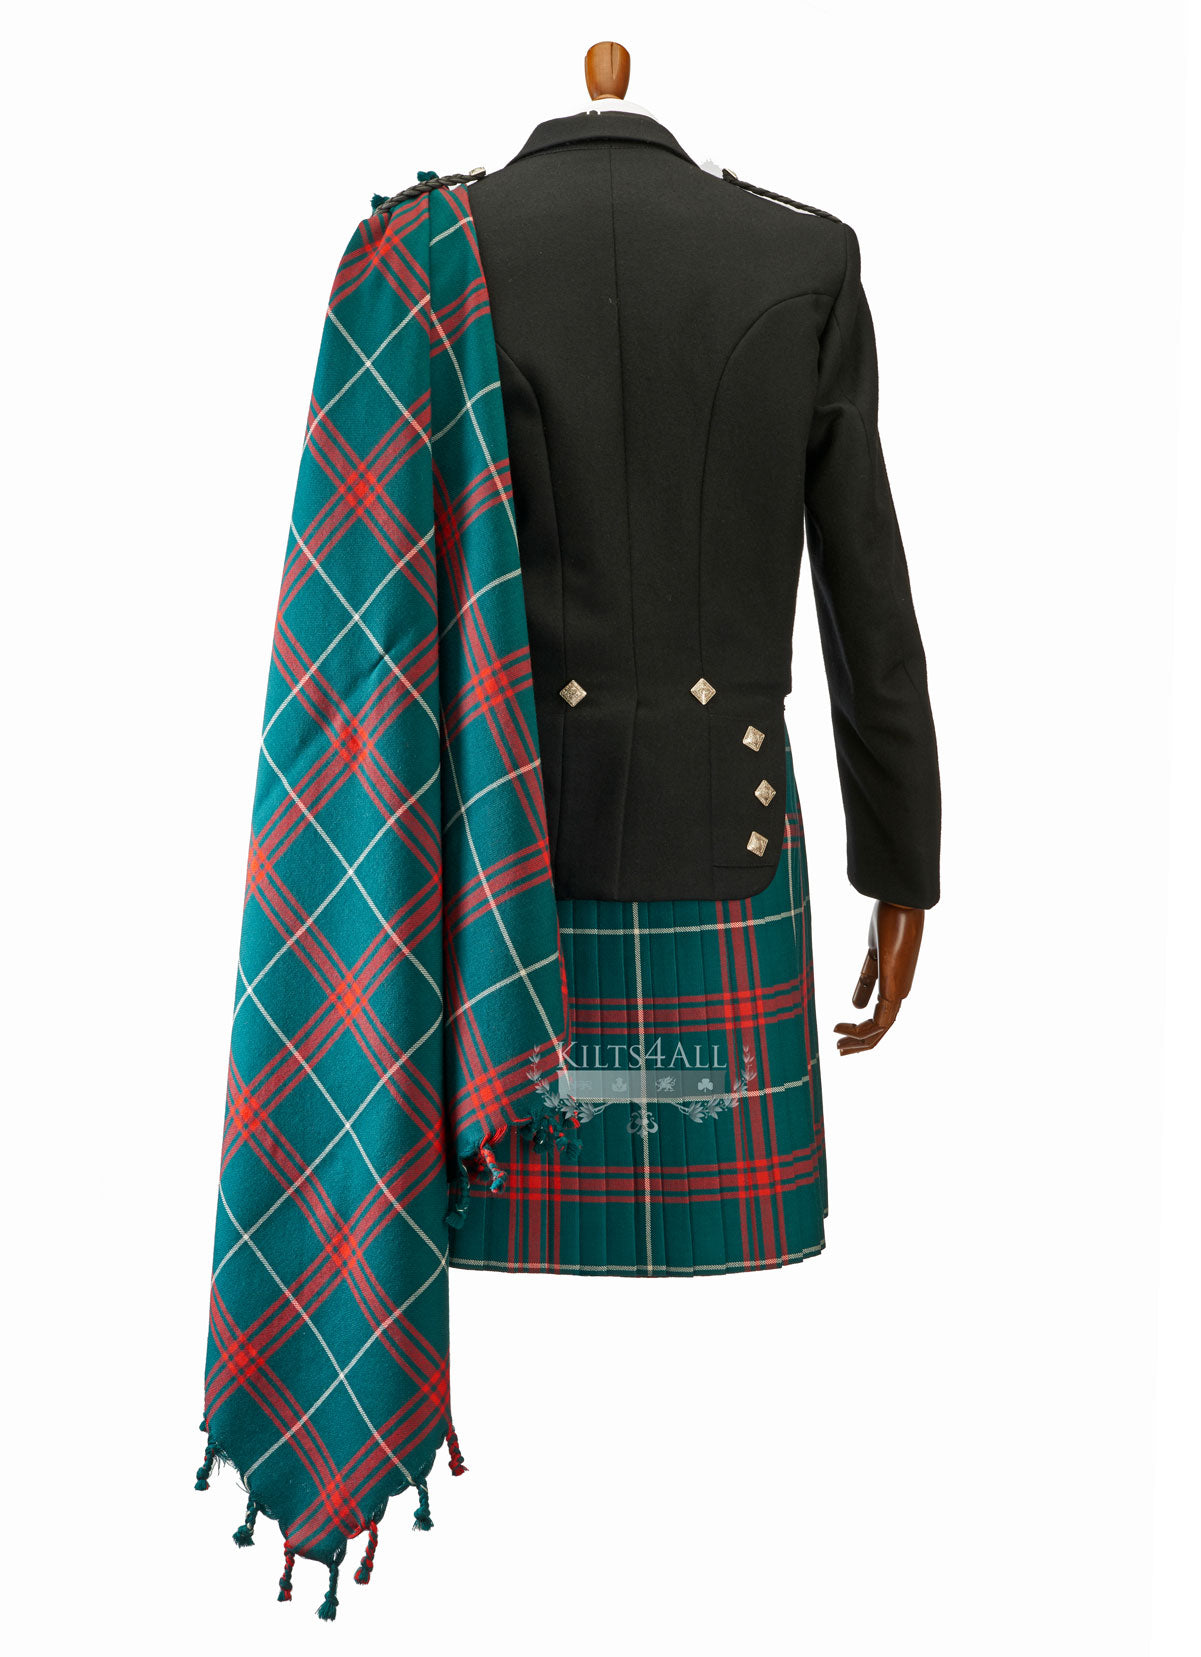 Mens Scottish Tartan Kilt Outfit to Hire - Prince Charlie Jacket & 5 Button Waistcoat